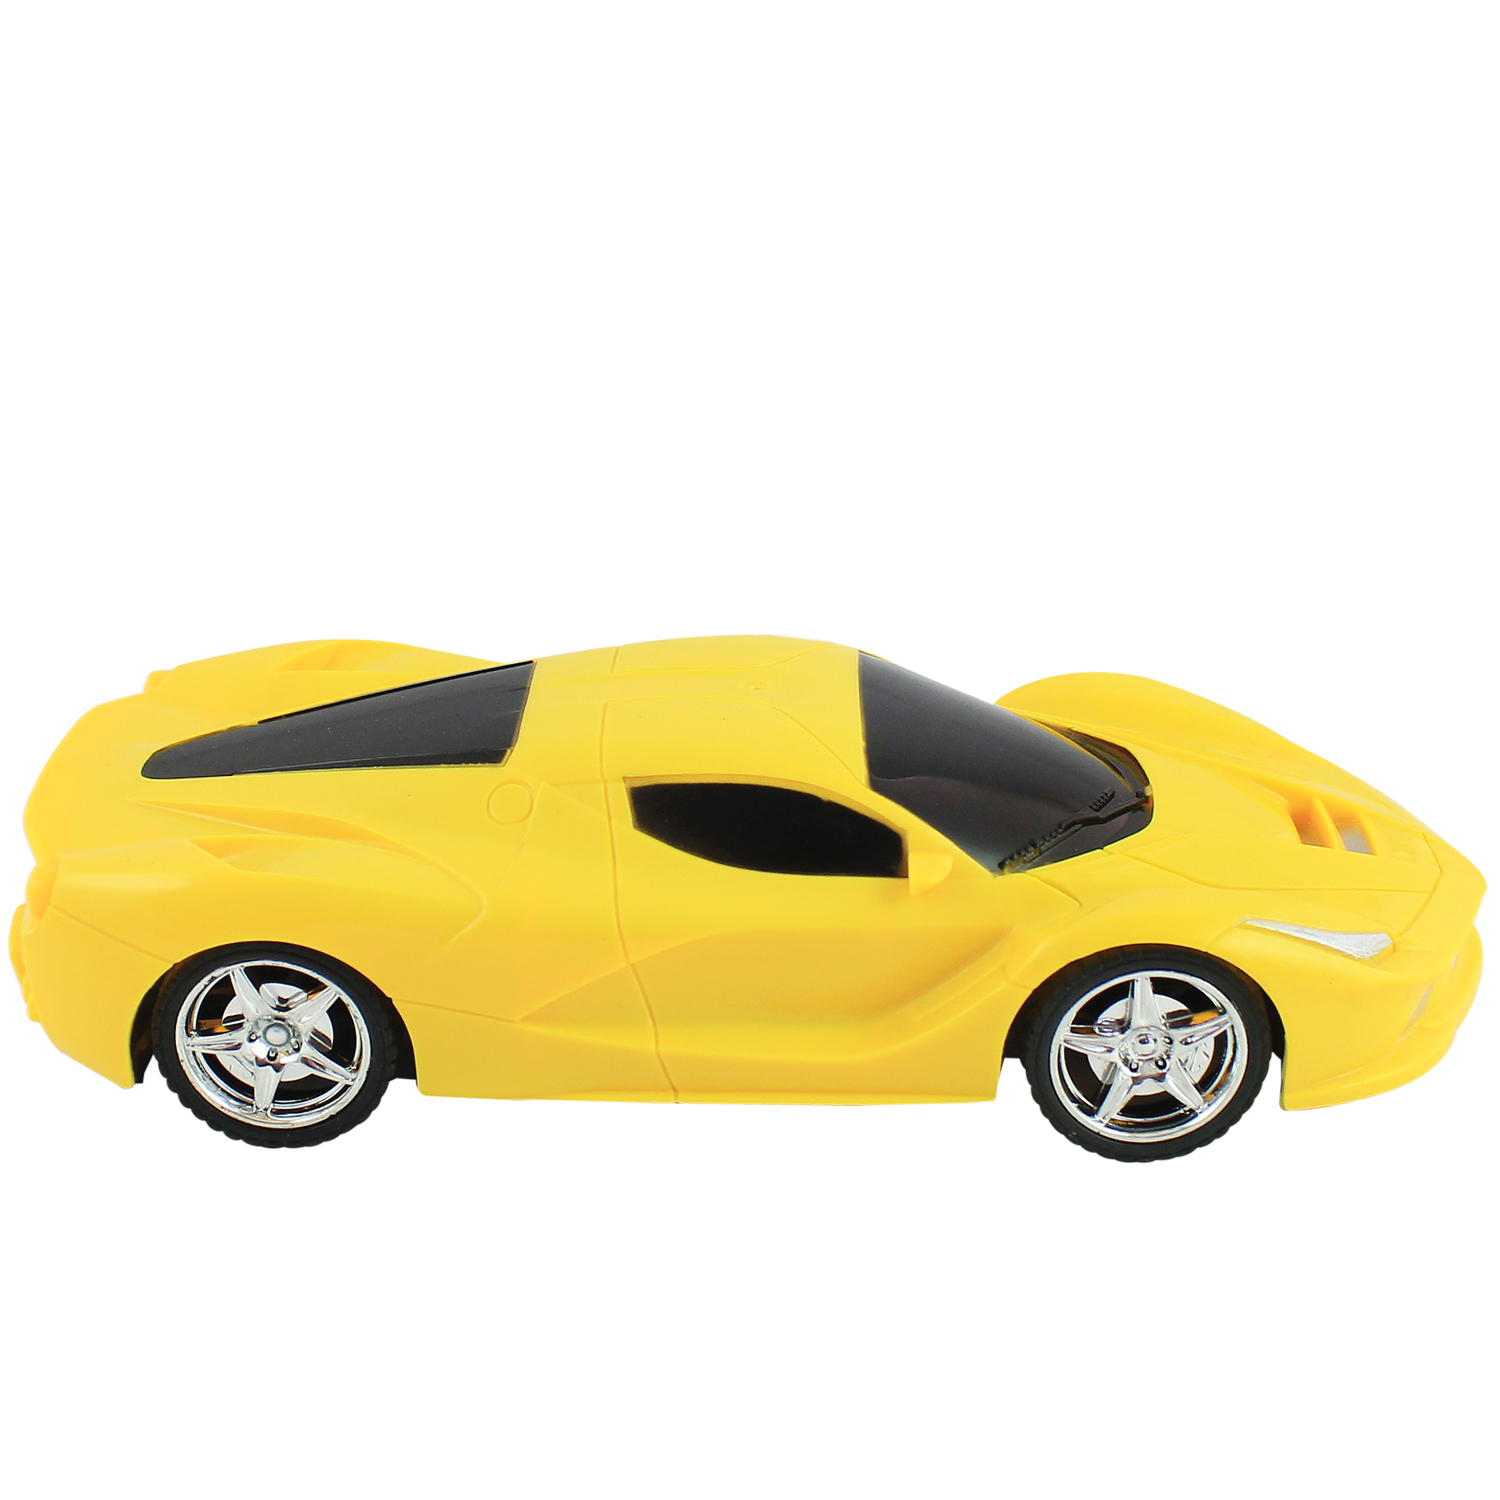 Annie Remote Control Car Four Way High Speed | Right Left Backward And Forward Direction | 22 Cms Length | Kids Best Gift | Yellow Colour | Battery Operated | Non-Toxic (Yellow)